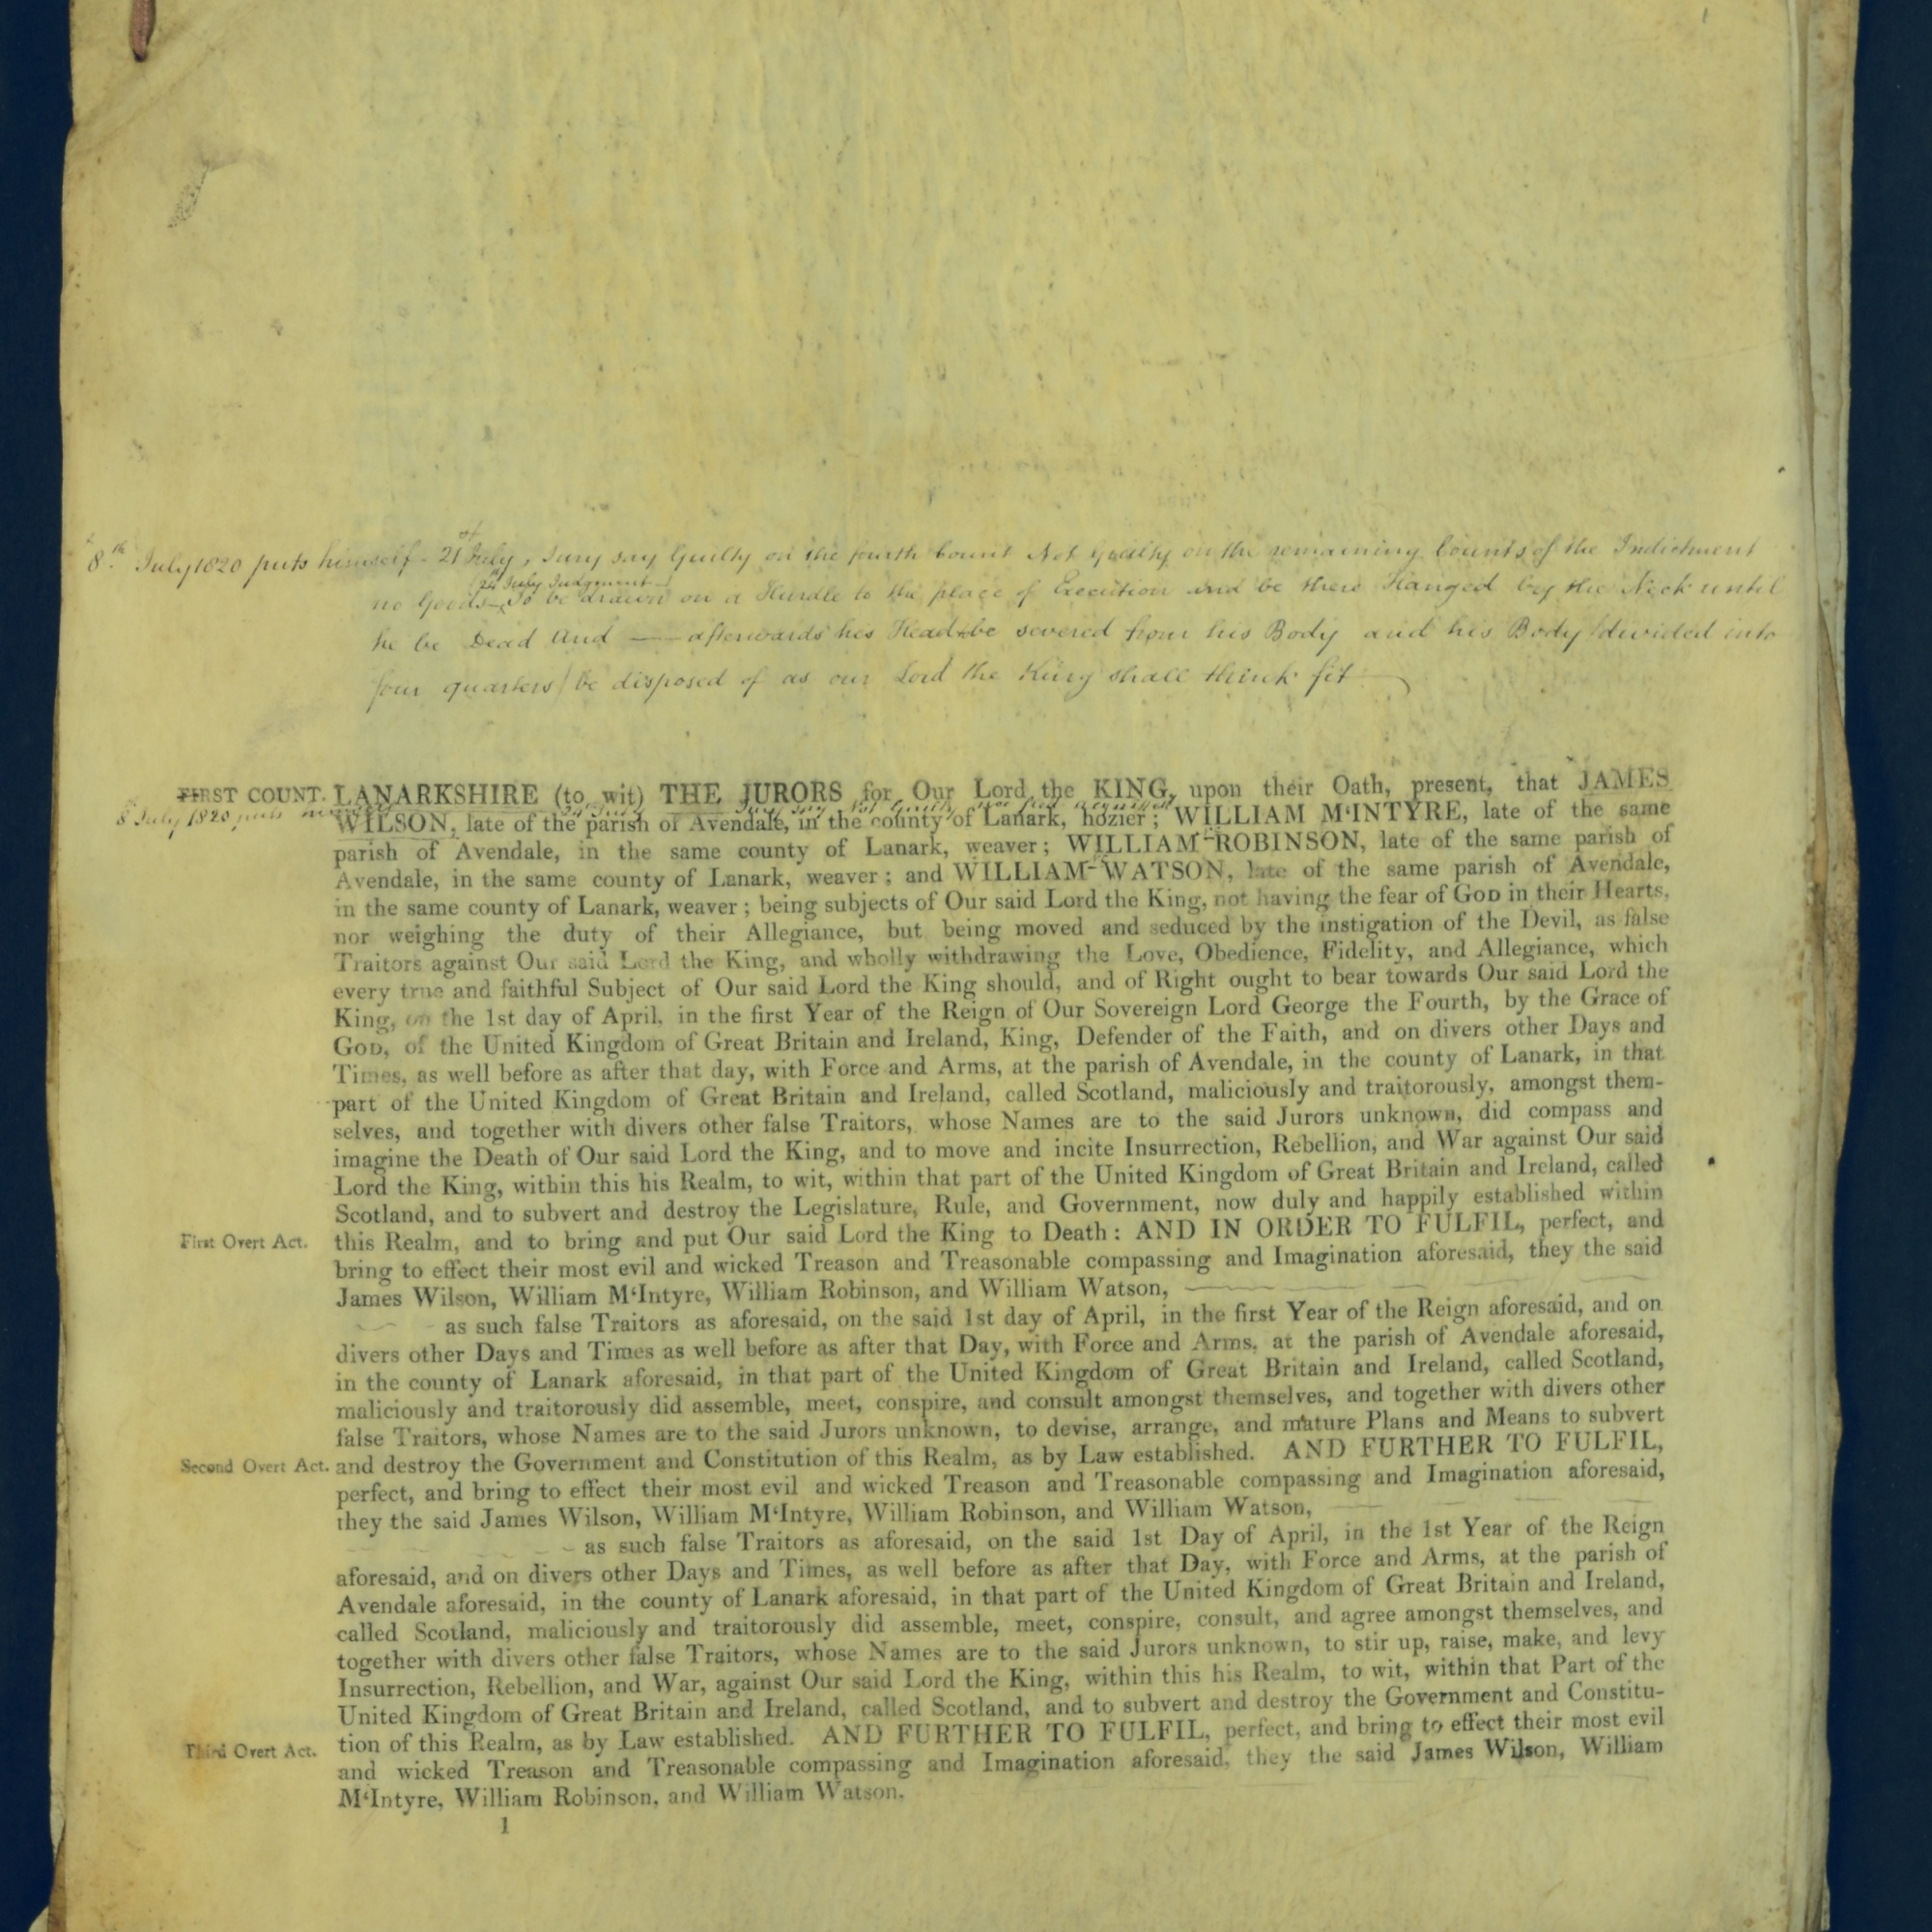 Treason Trials for the County of Lanark, the Strathaven Case. True bills found against four men, James Wilson, William McIntyre, William Robinson and William Watson. National Records of Scotland, Crown copyright, JC21/3/4 p1